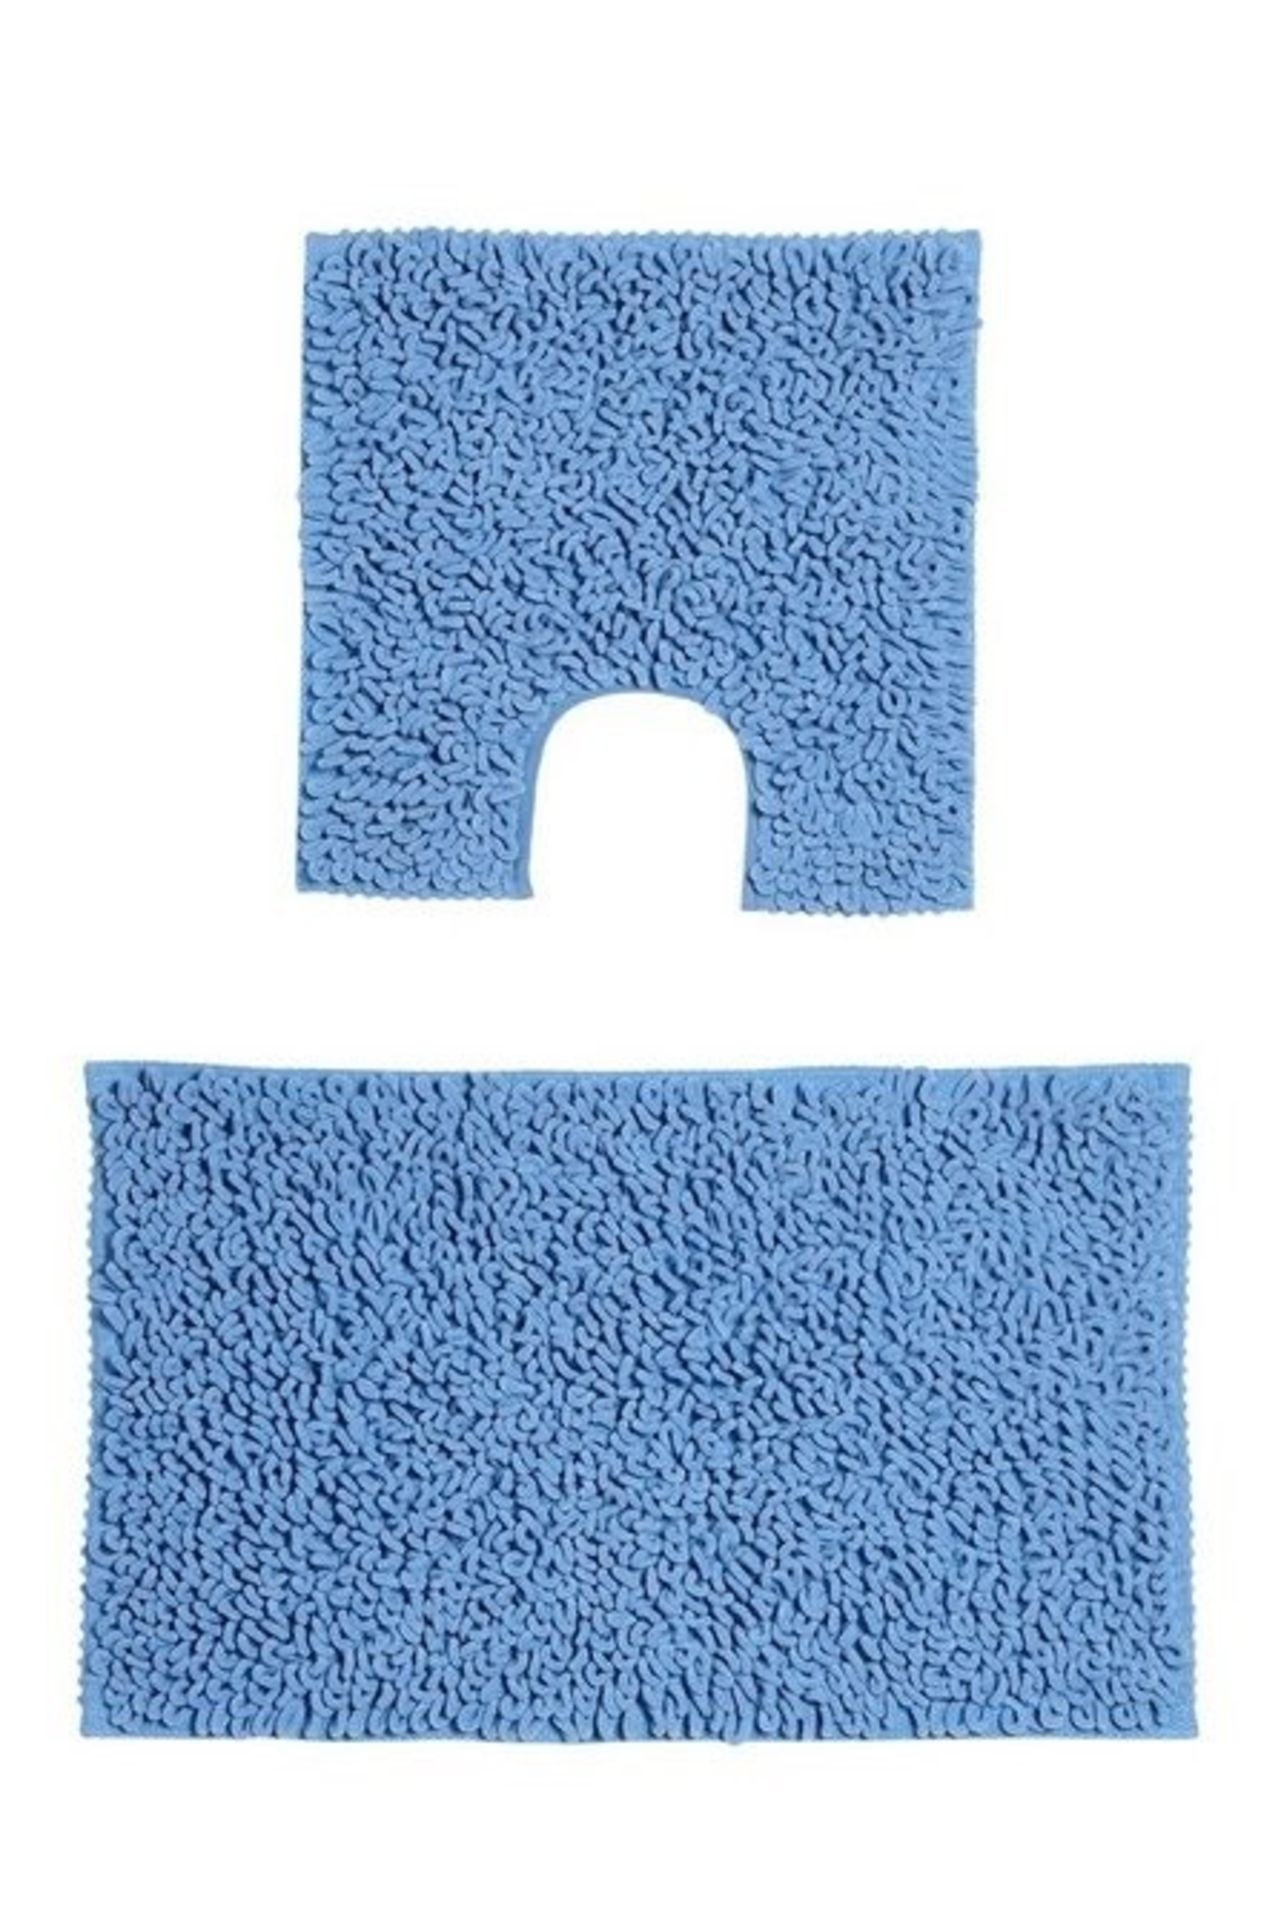 Lot 152 - 1 BAGGED CHENILLE LOOP BATH MAT IN JADE (PUBLIC VIEWING AVAILABLE)